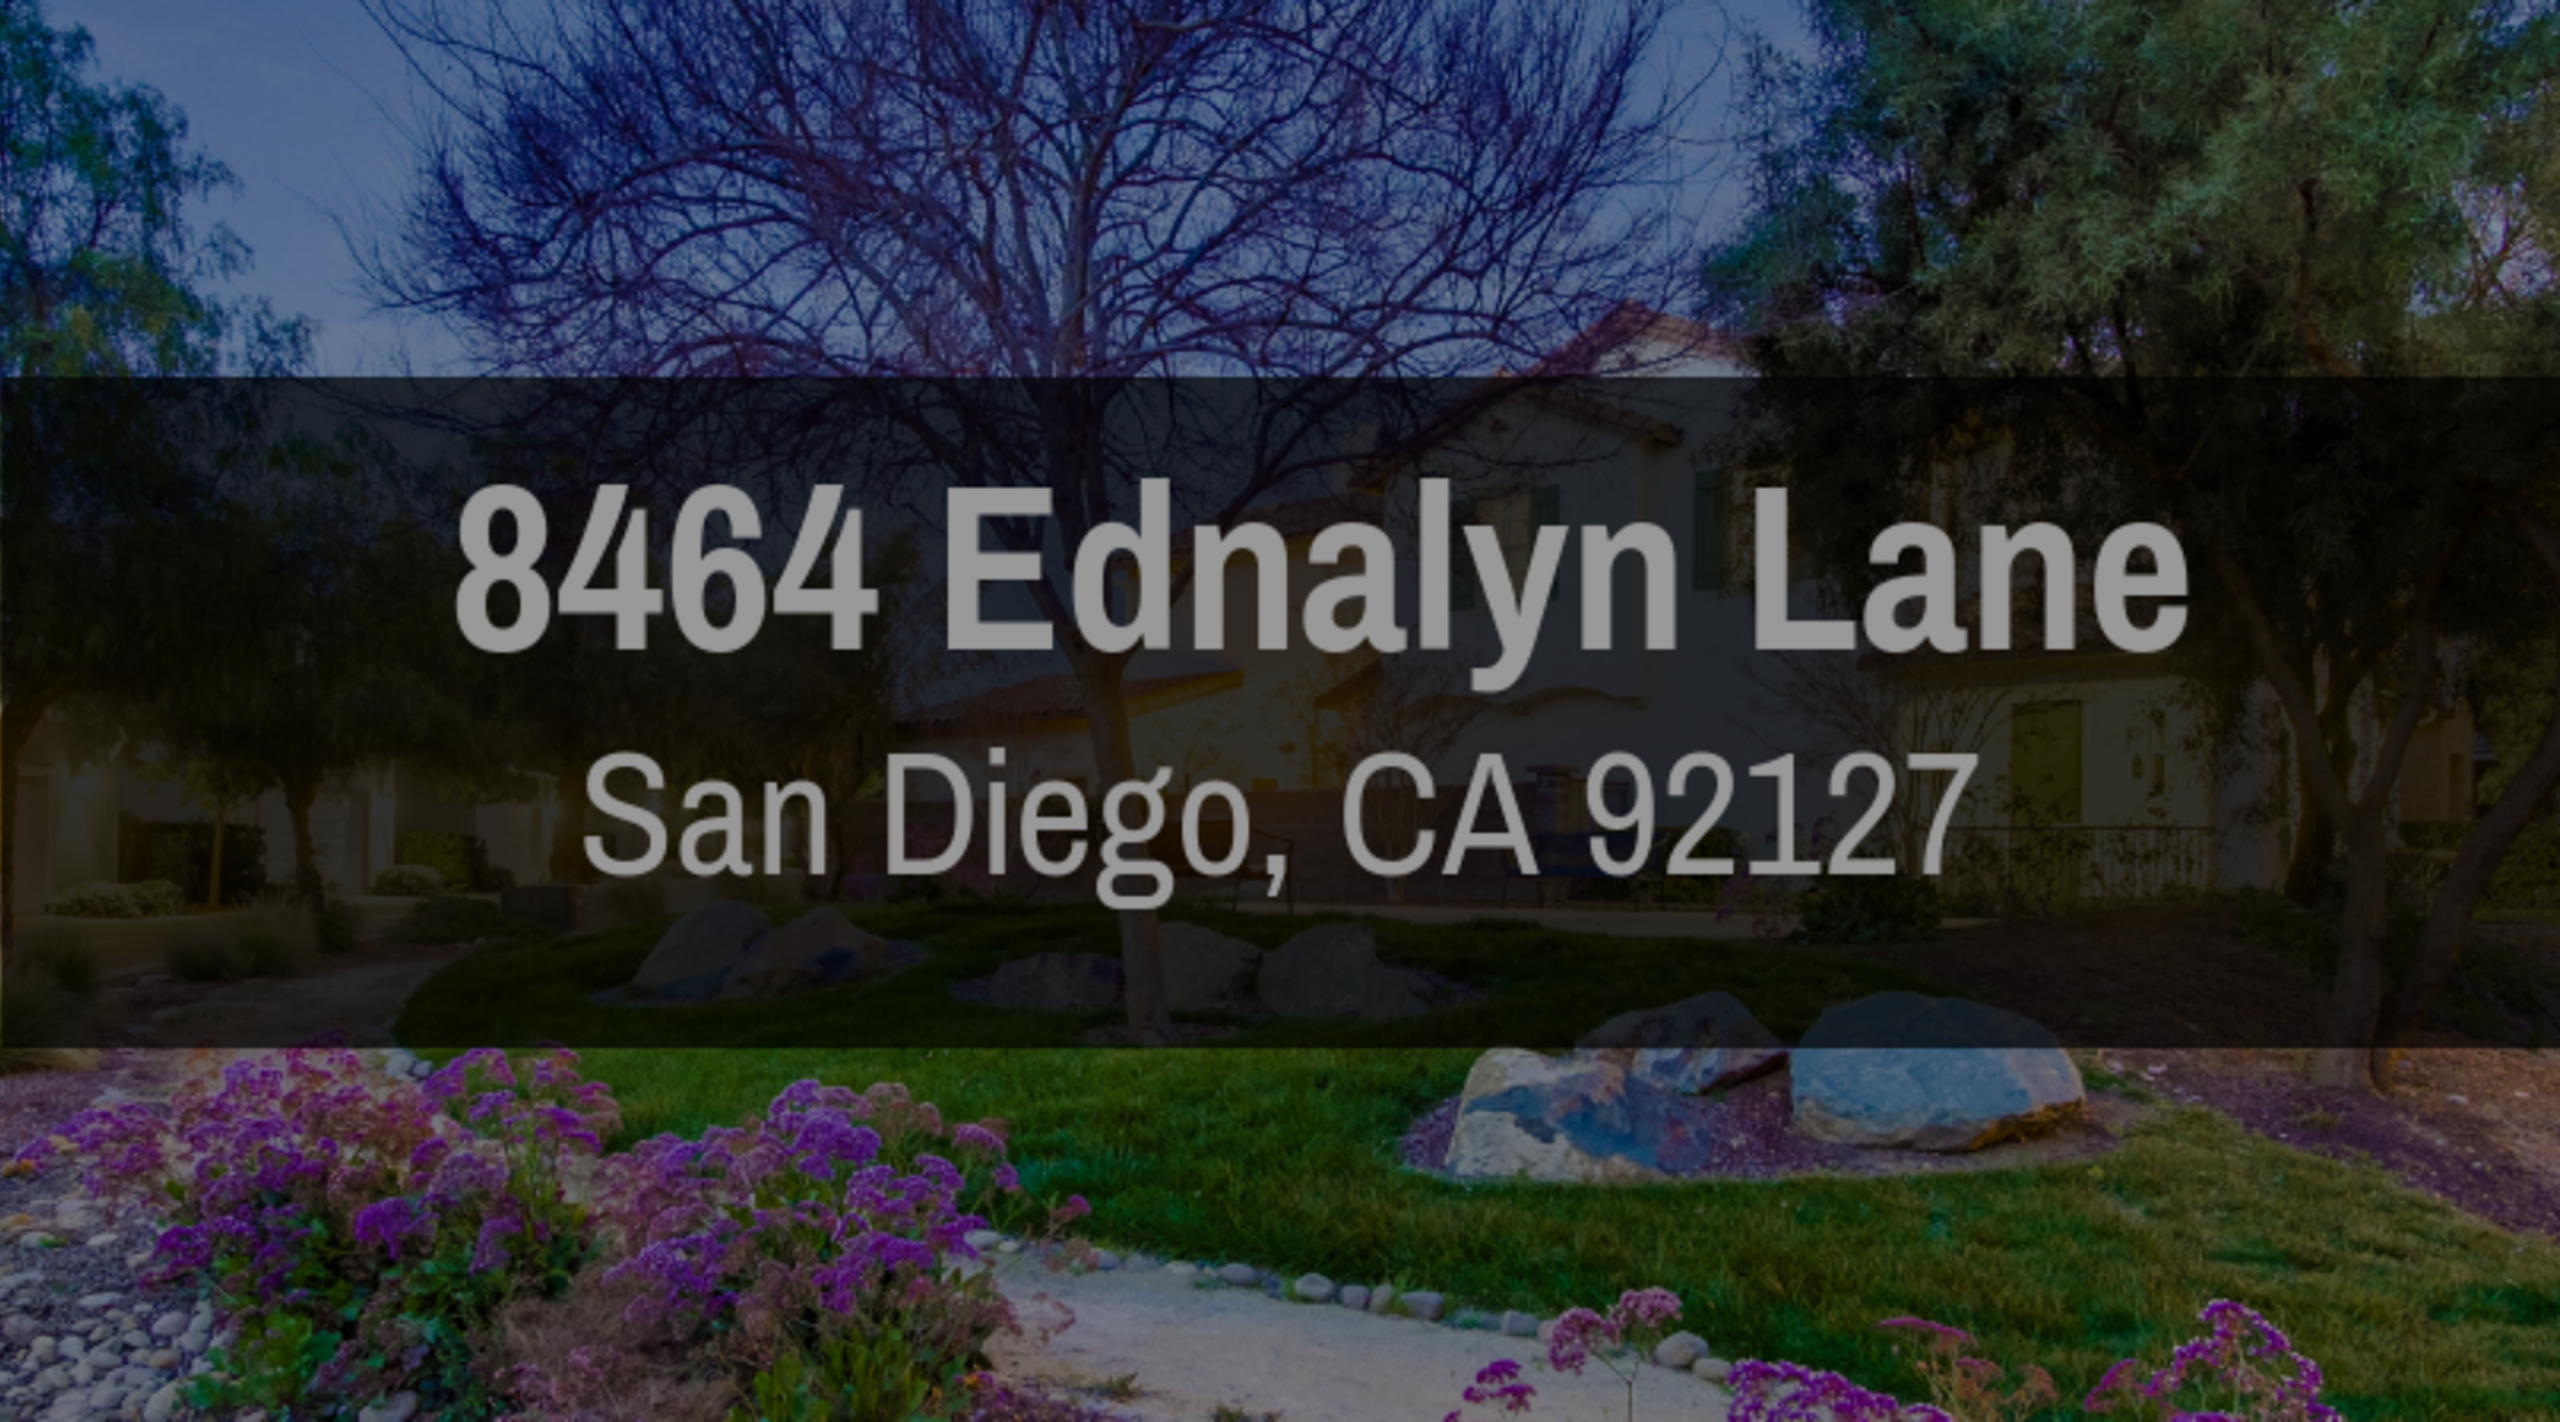 8464 EDNALYN LANE, SAN DIEGO, CA 92127 | FOR SALE